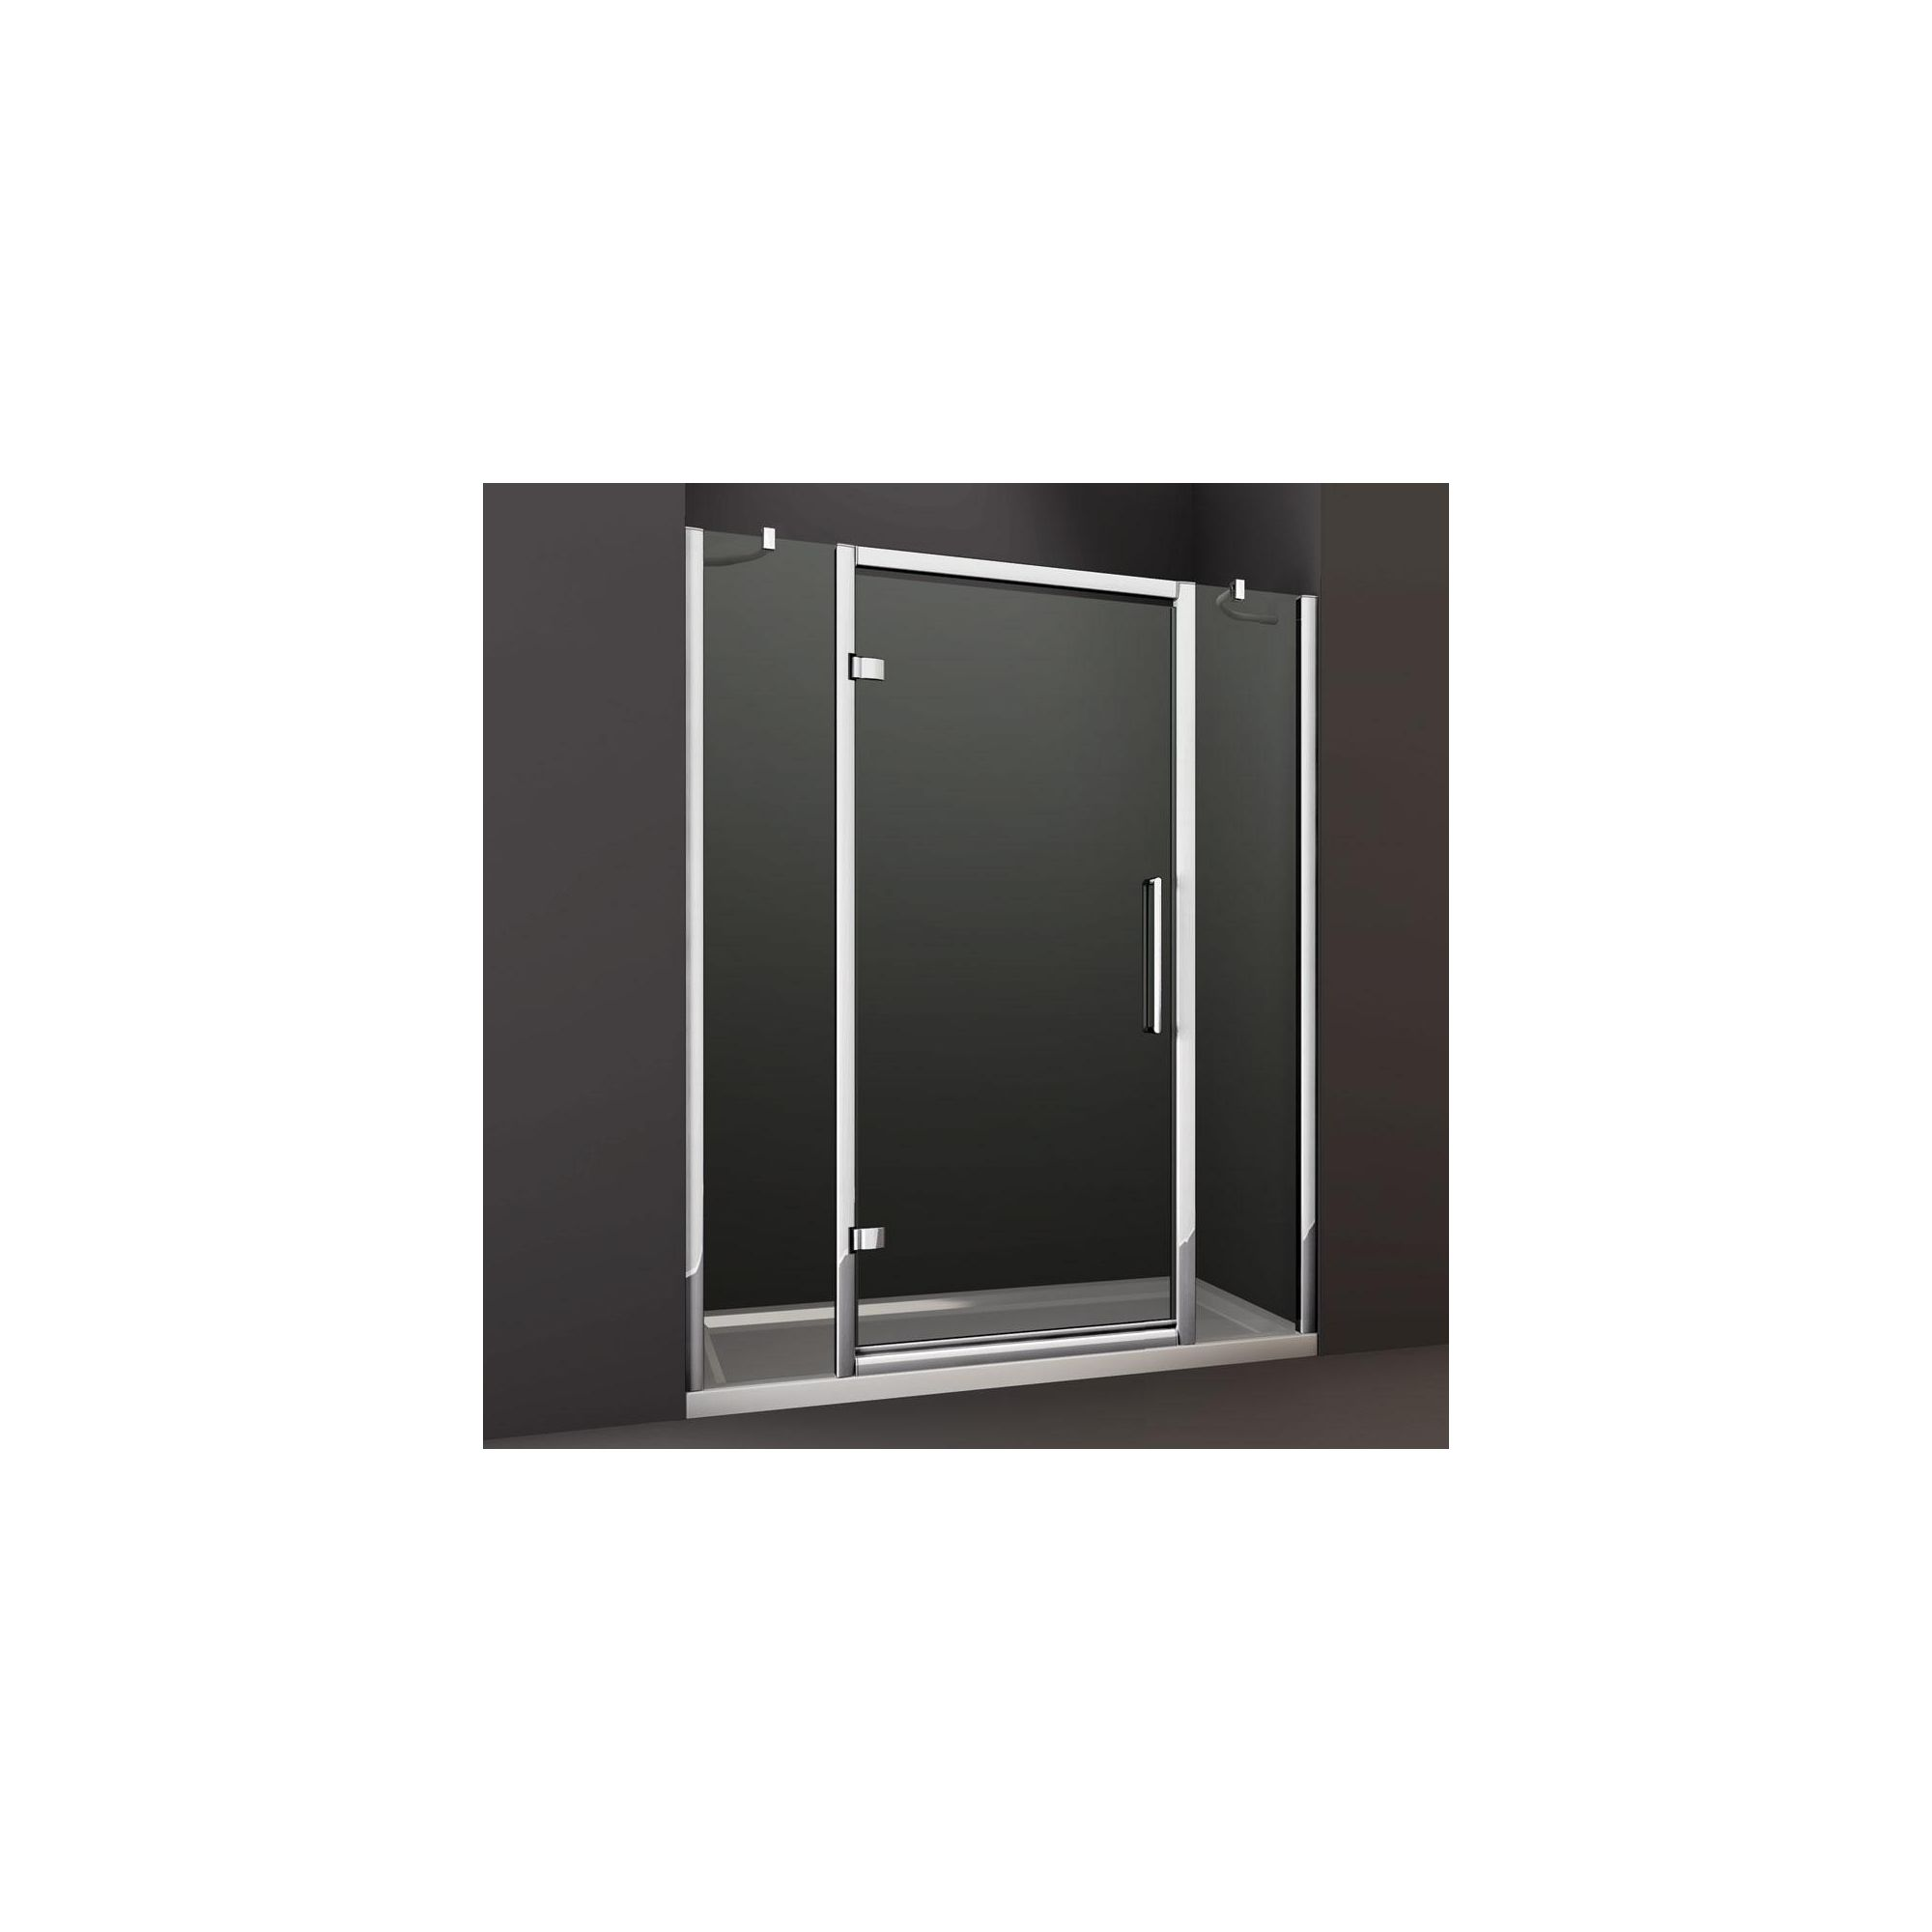 Merlyn Series 8 Double Inline Hinged Shower Door, 1400mm Wide, Chrome Frame, 8mm Glass at Tesco Direct